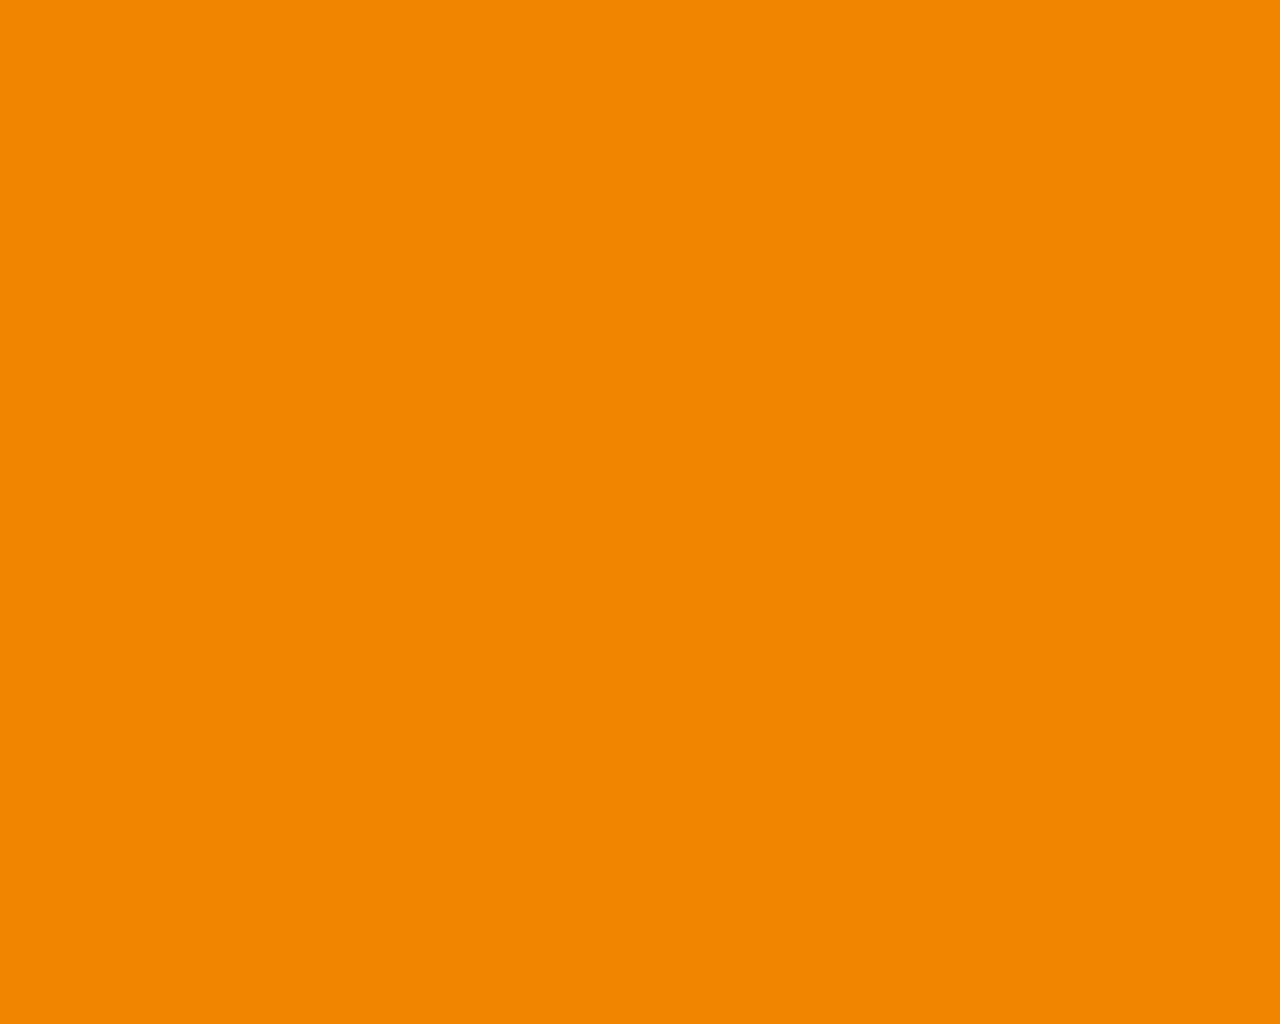 1280x1024 Tangerine Solid Color Background